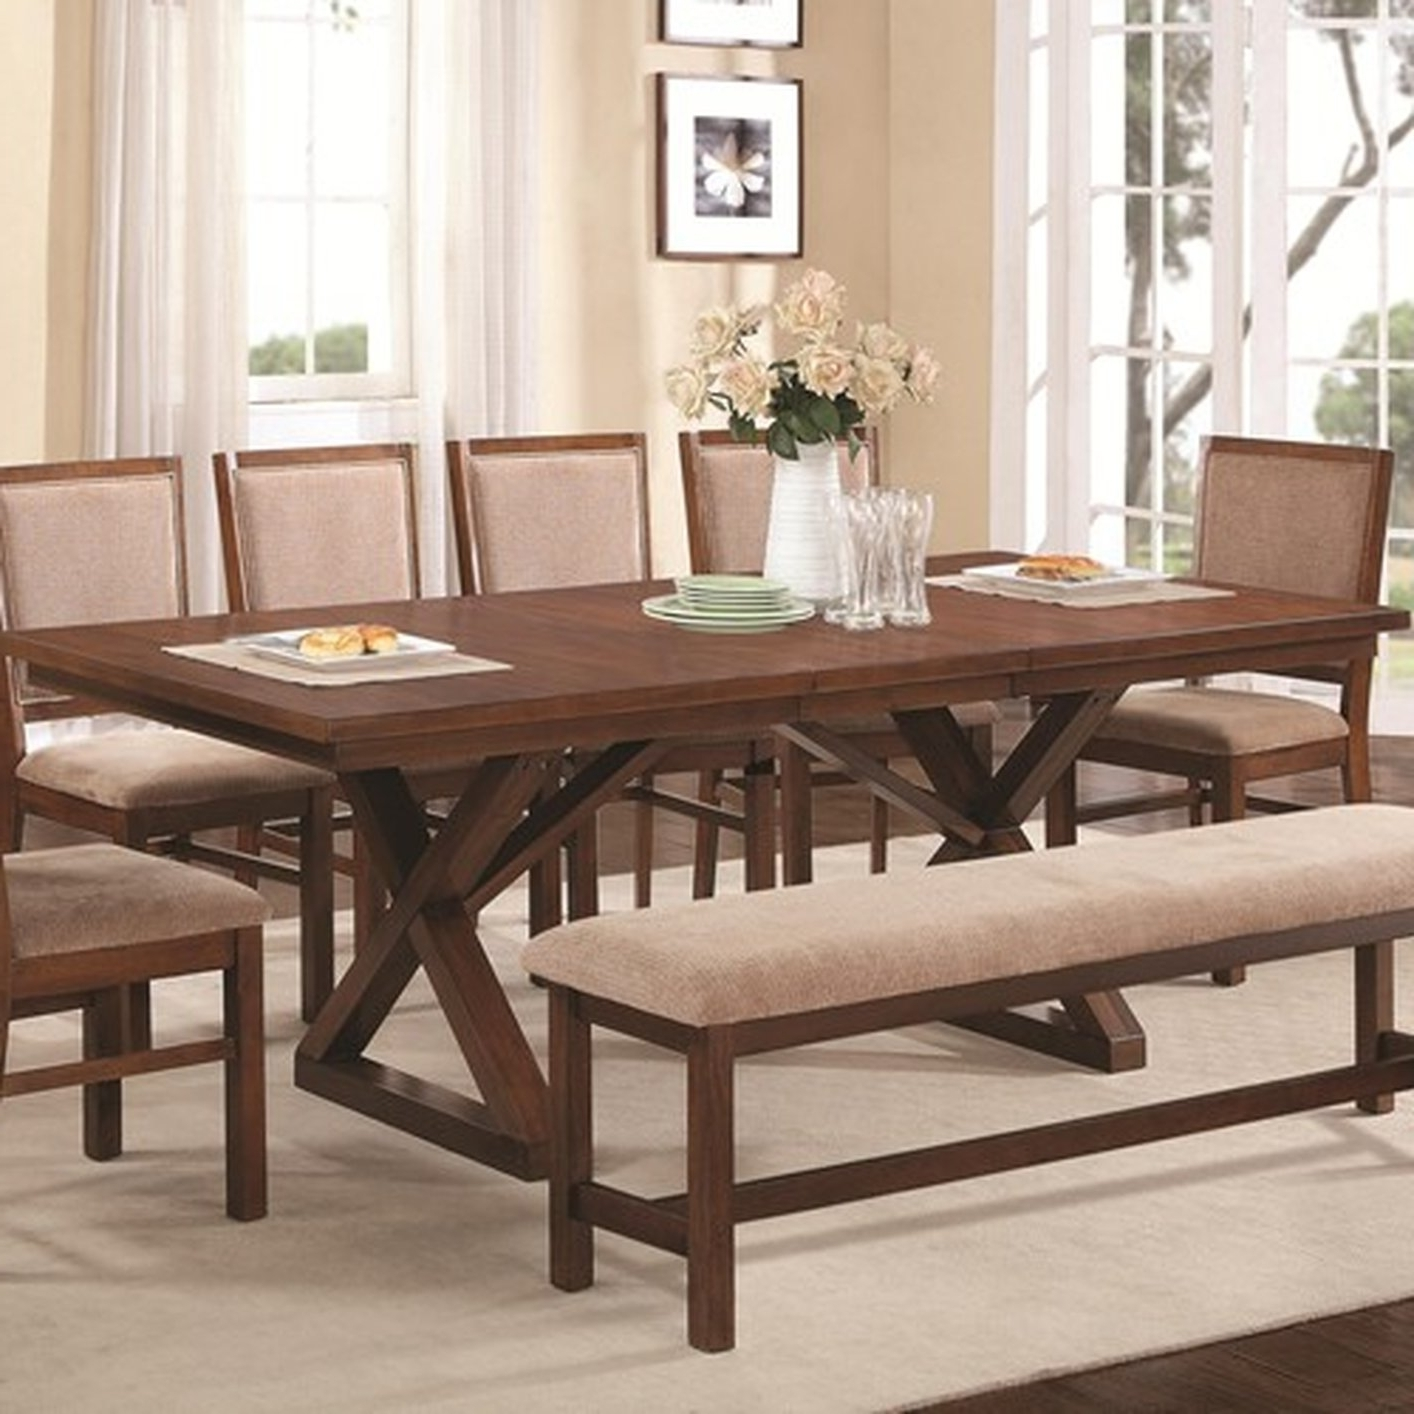 Brown Wood Dining Table – Steal A Sofa Furniture Outlet Los Angeles Ca In Popular Sofa Chairs With Dining Table (View 6 of 20)